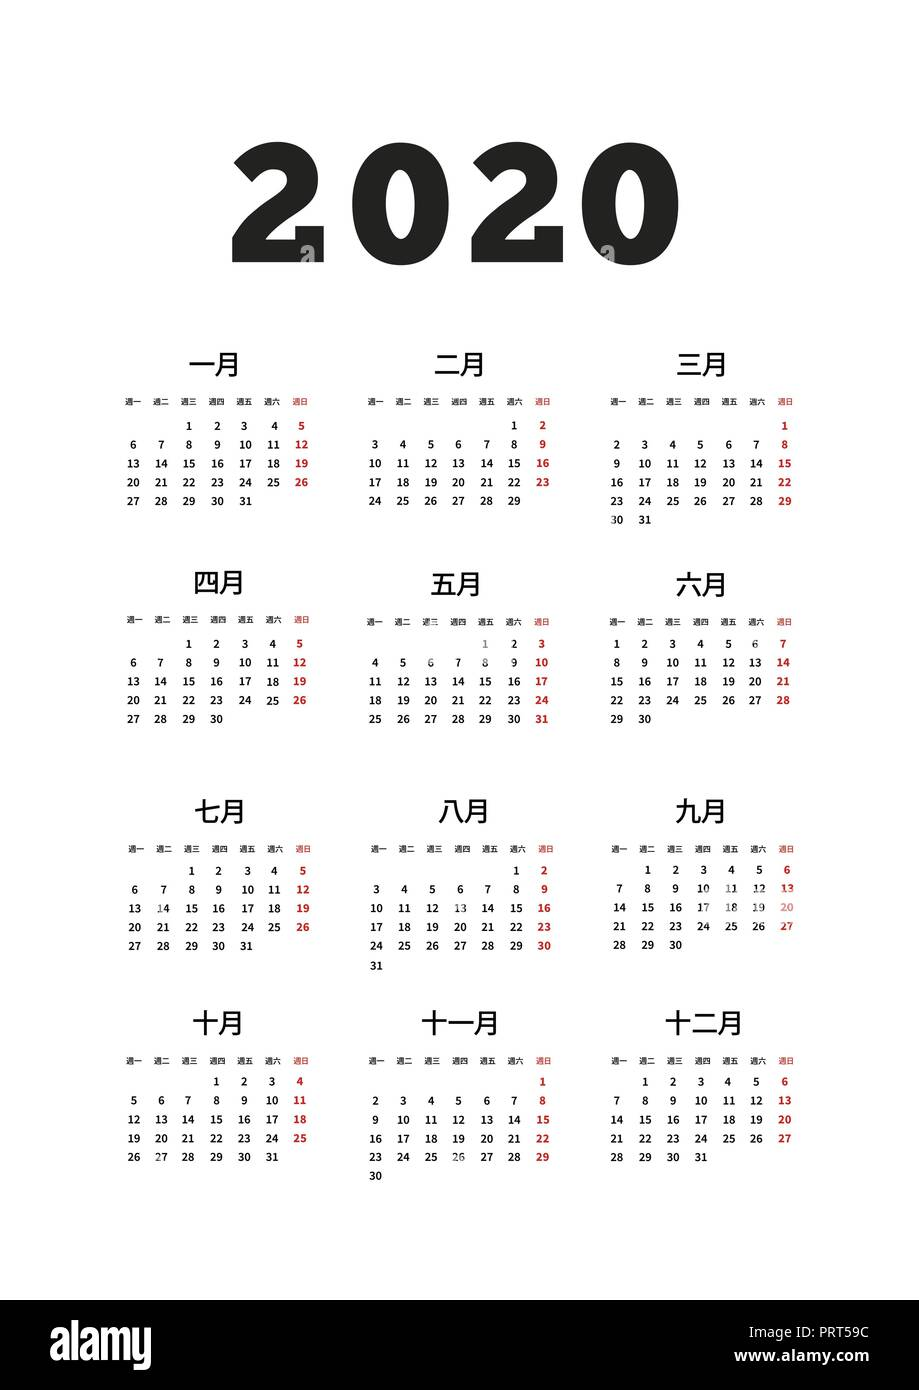 Calendar China 2020 2020 year simple calendar on chinese language, A4 size vertical